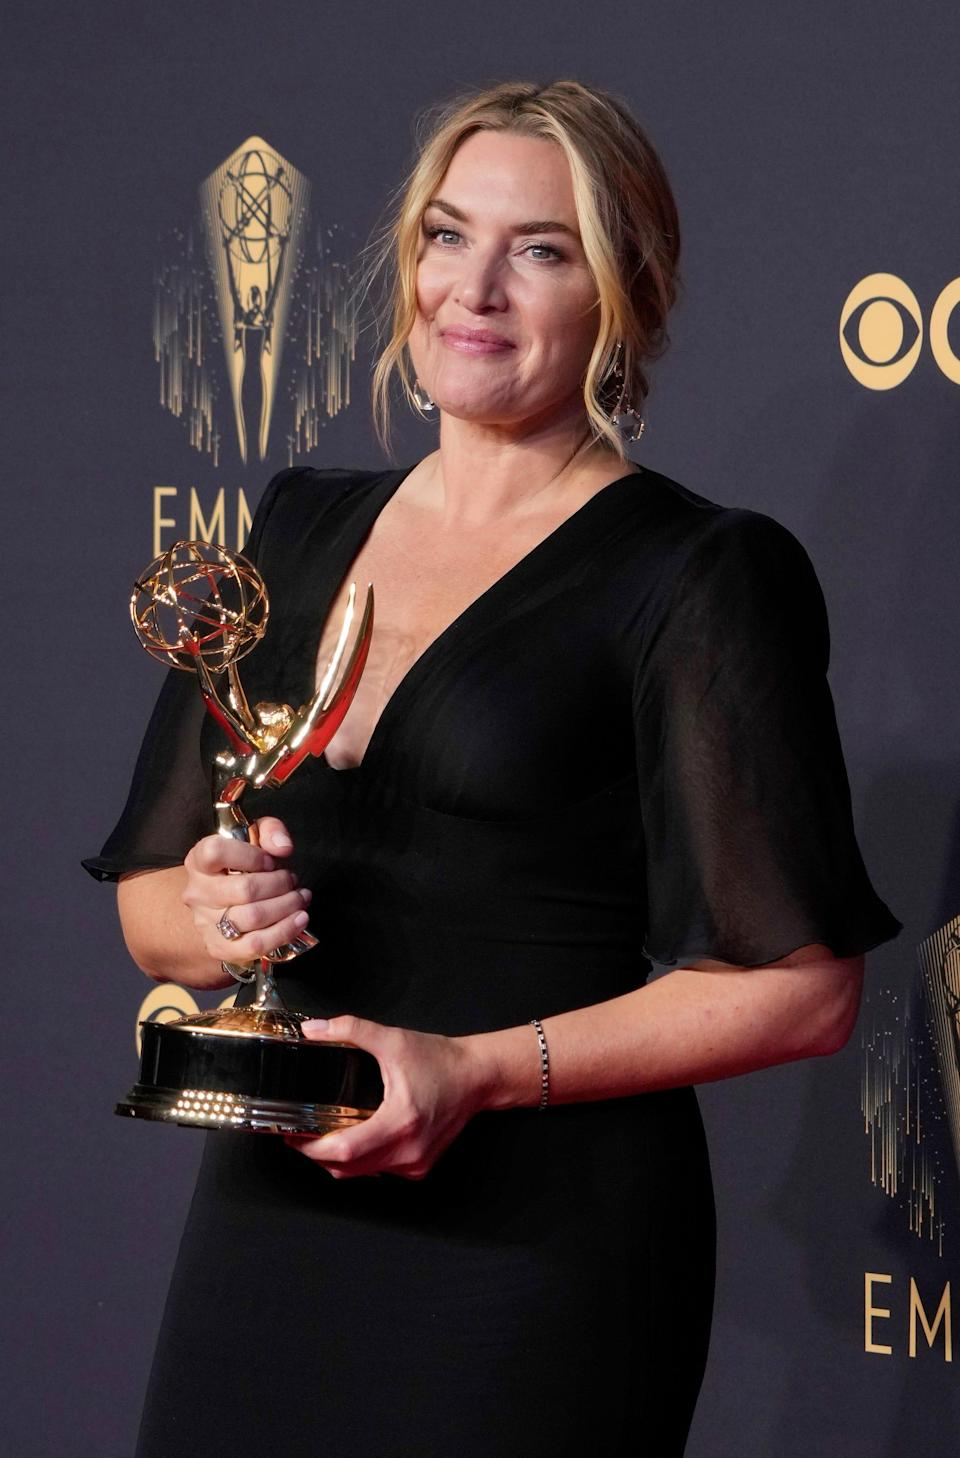 Kate Winslet, winner of Lead Actress is a Limited or Anthology Series or Movie for 'Mare of Easttown', in the press room at the 73rd Emmy Awards at L.A. Live.